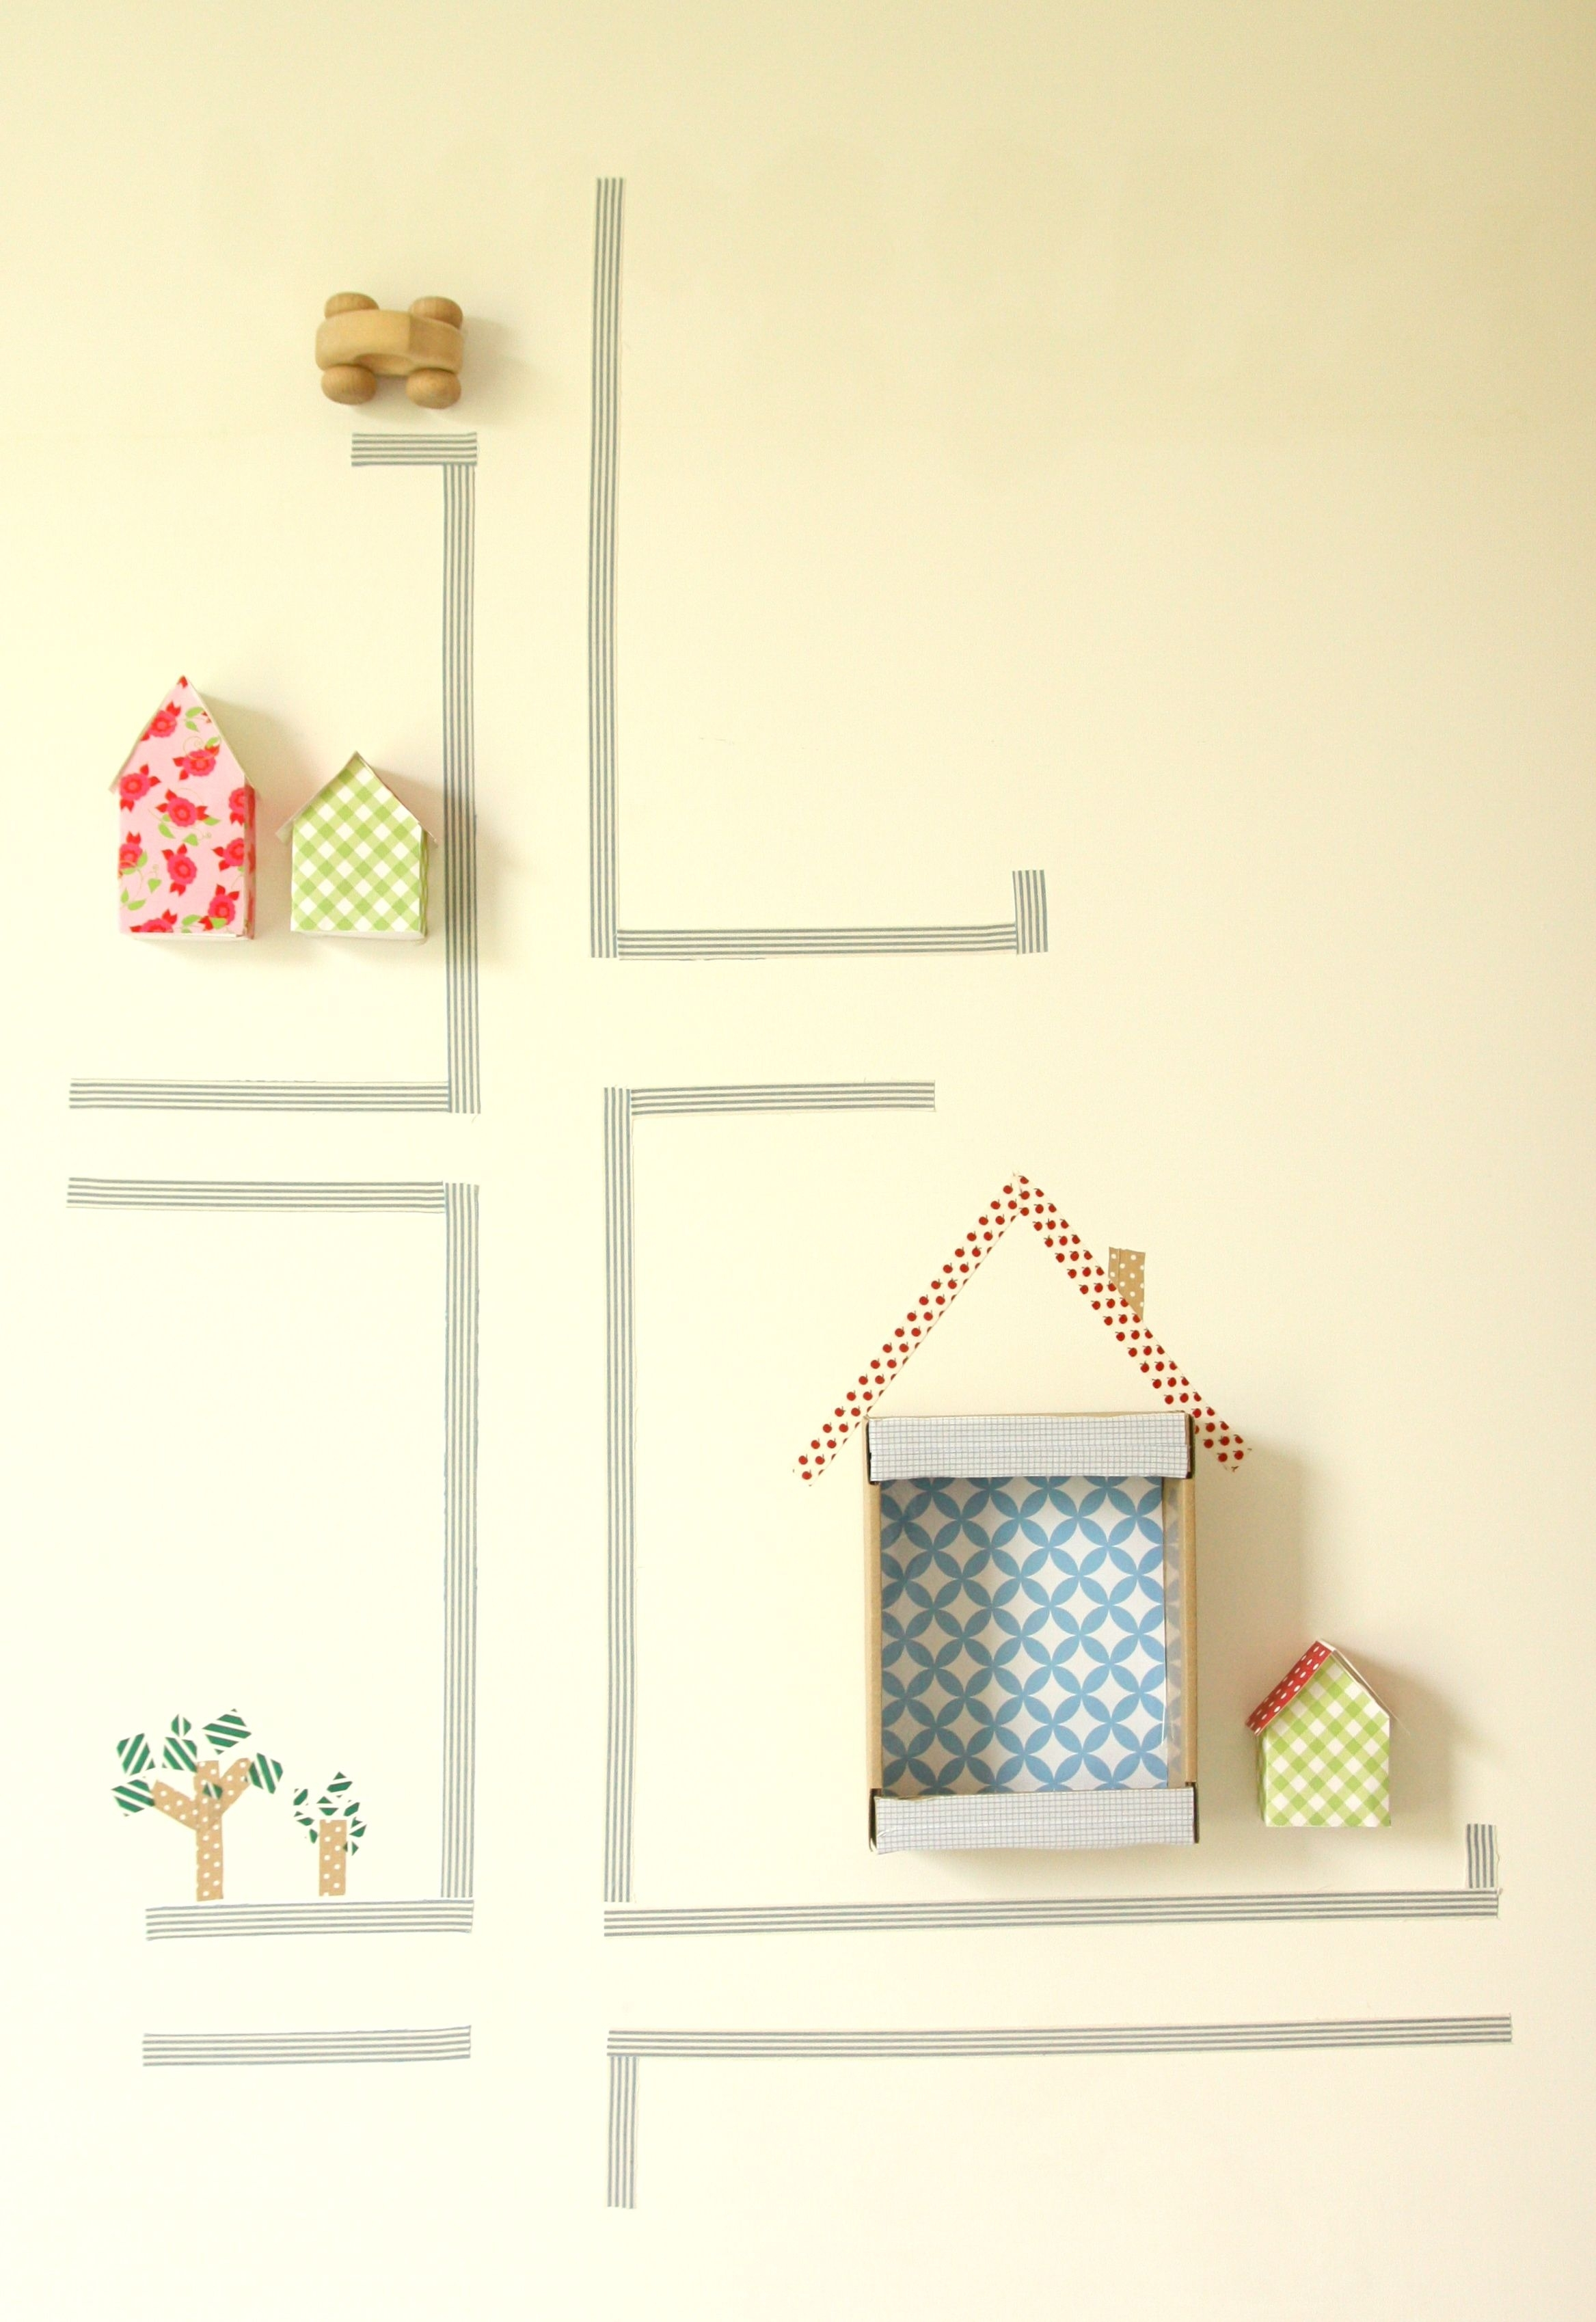 Washi Tape Wall Decoration – Dymyself | Share Your Craft | Pinterest For Most Current Washi Tape Wall Art (View 20 of 20)